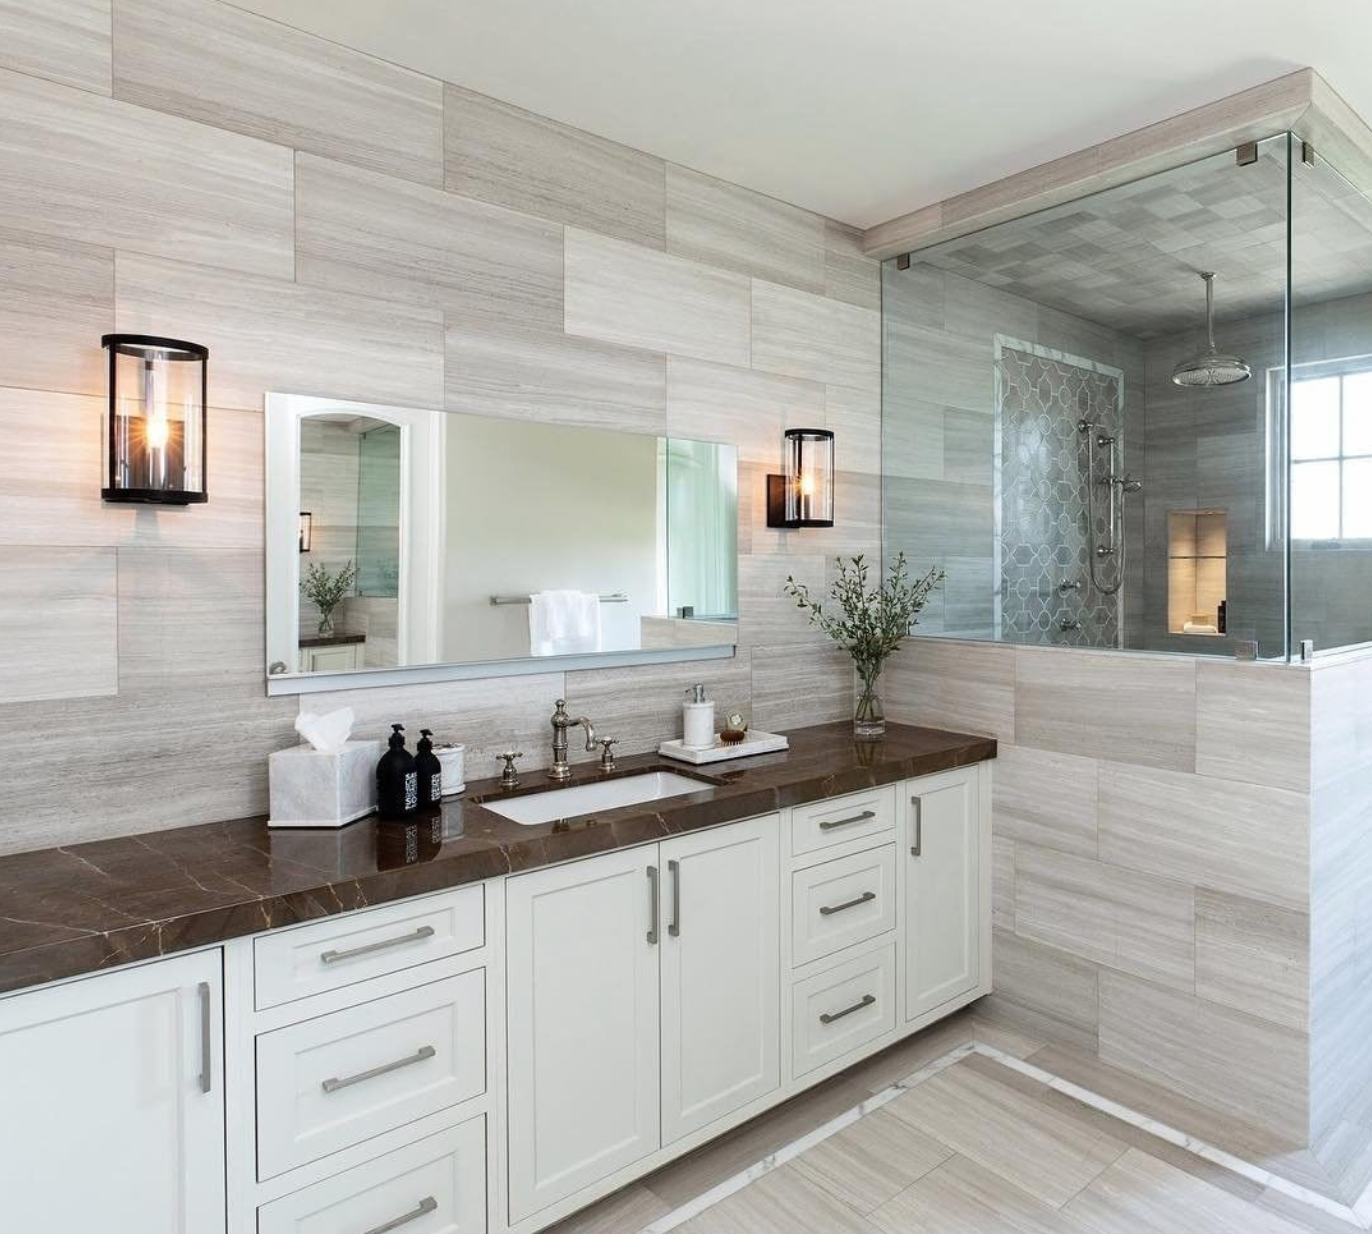 Clean lines and a neutral color palette make this mater bathroom feel expansive and airy. Design by  @anneraedesign ; photo by  @jenny_siegwart .